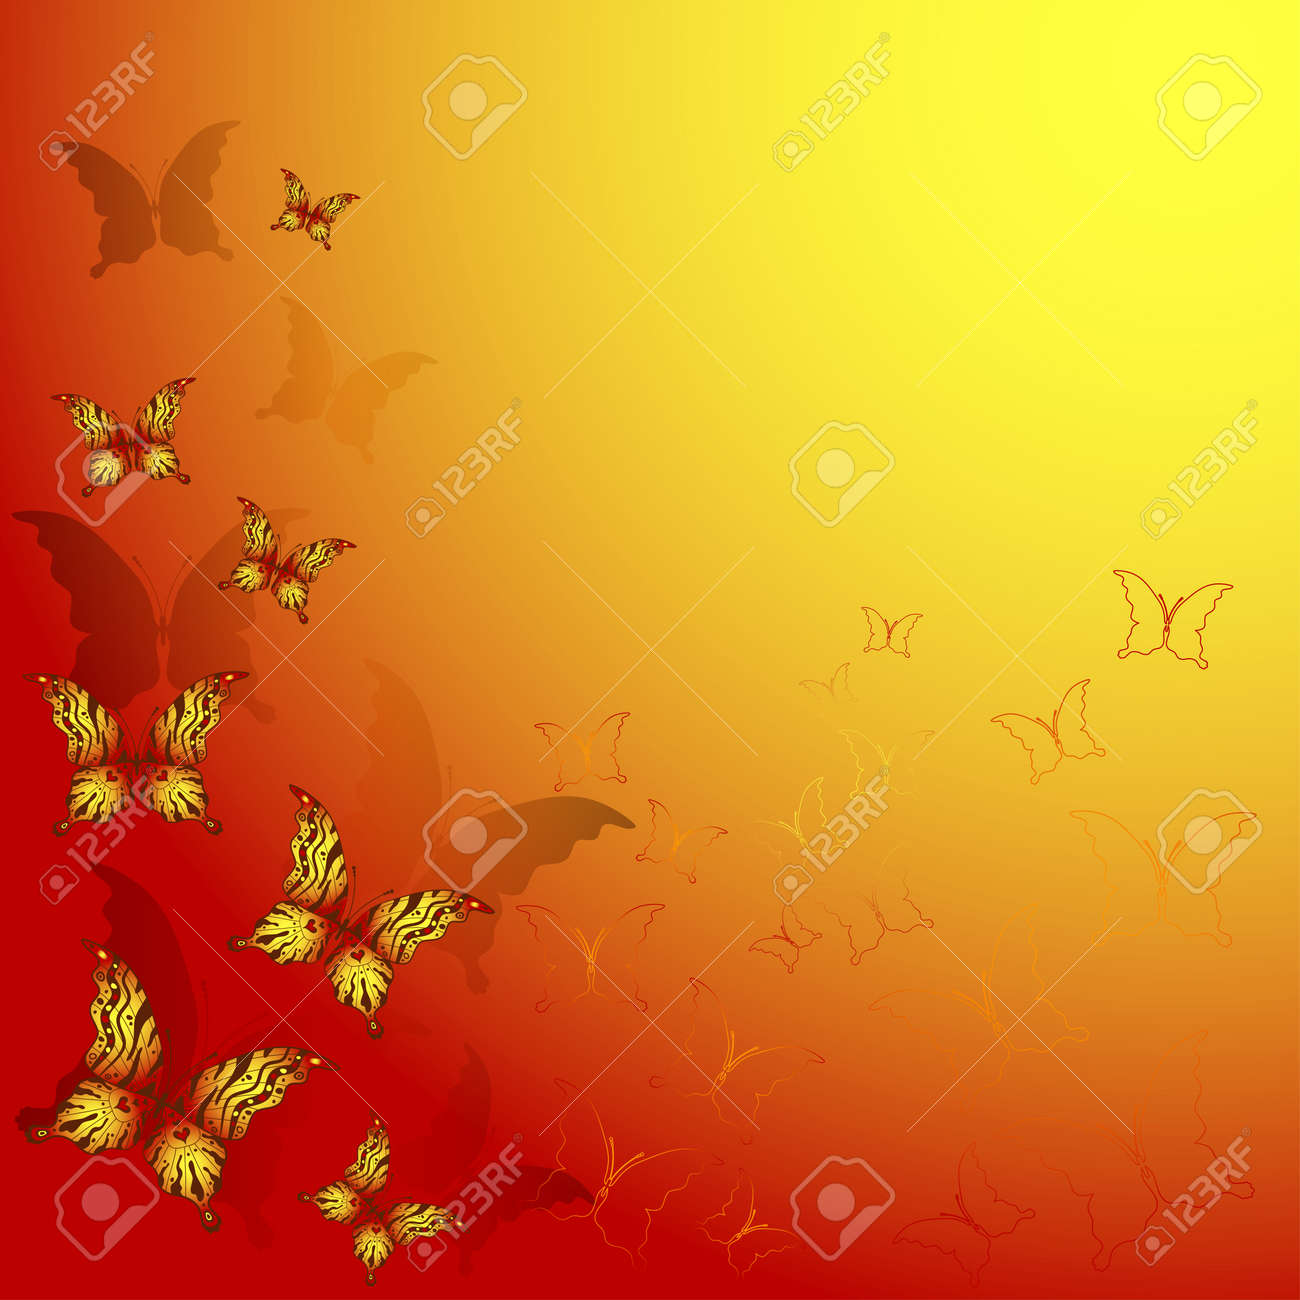 Decorative Red And Yellow Frame With Butterflies Royalty Free ...